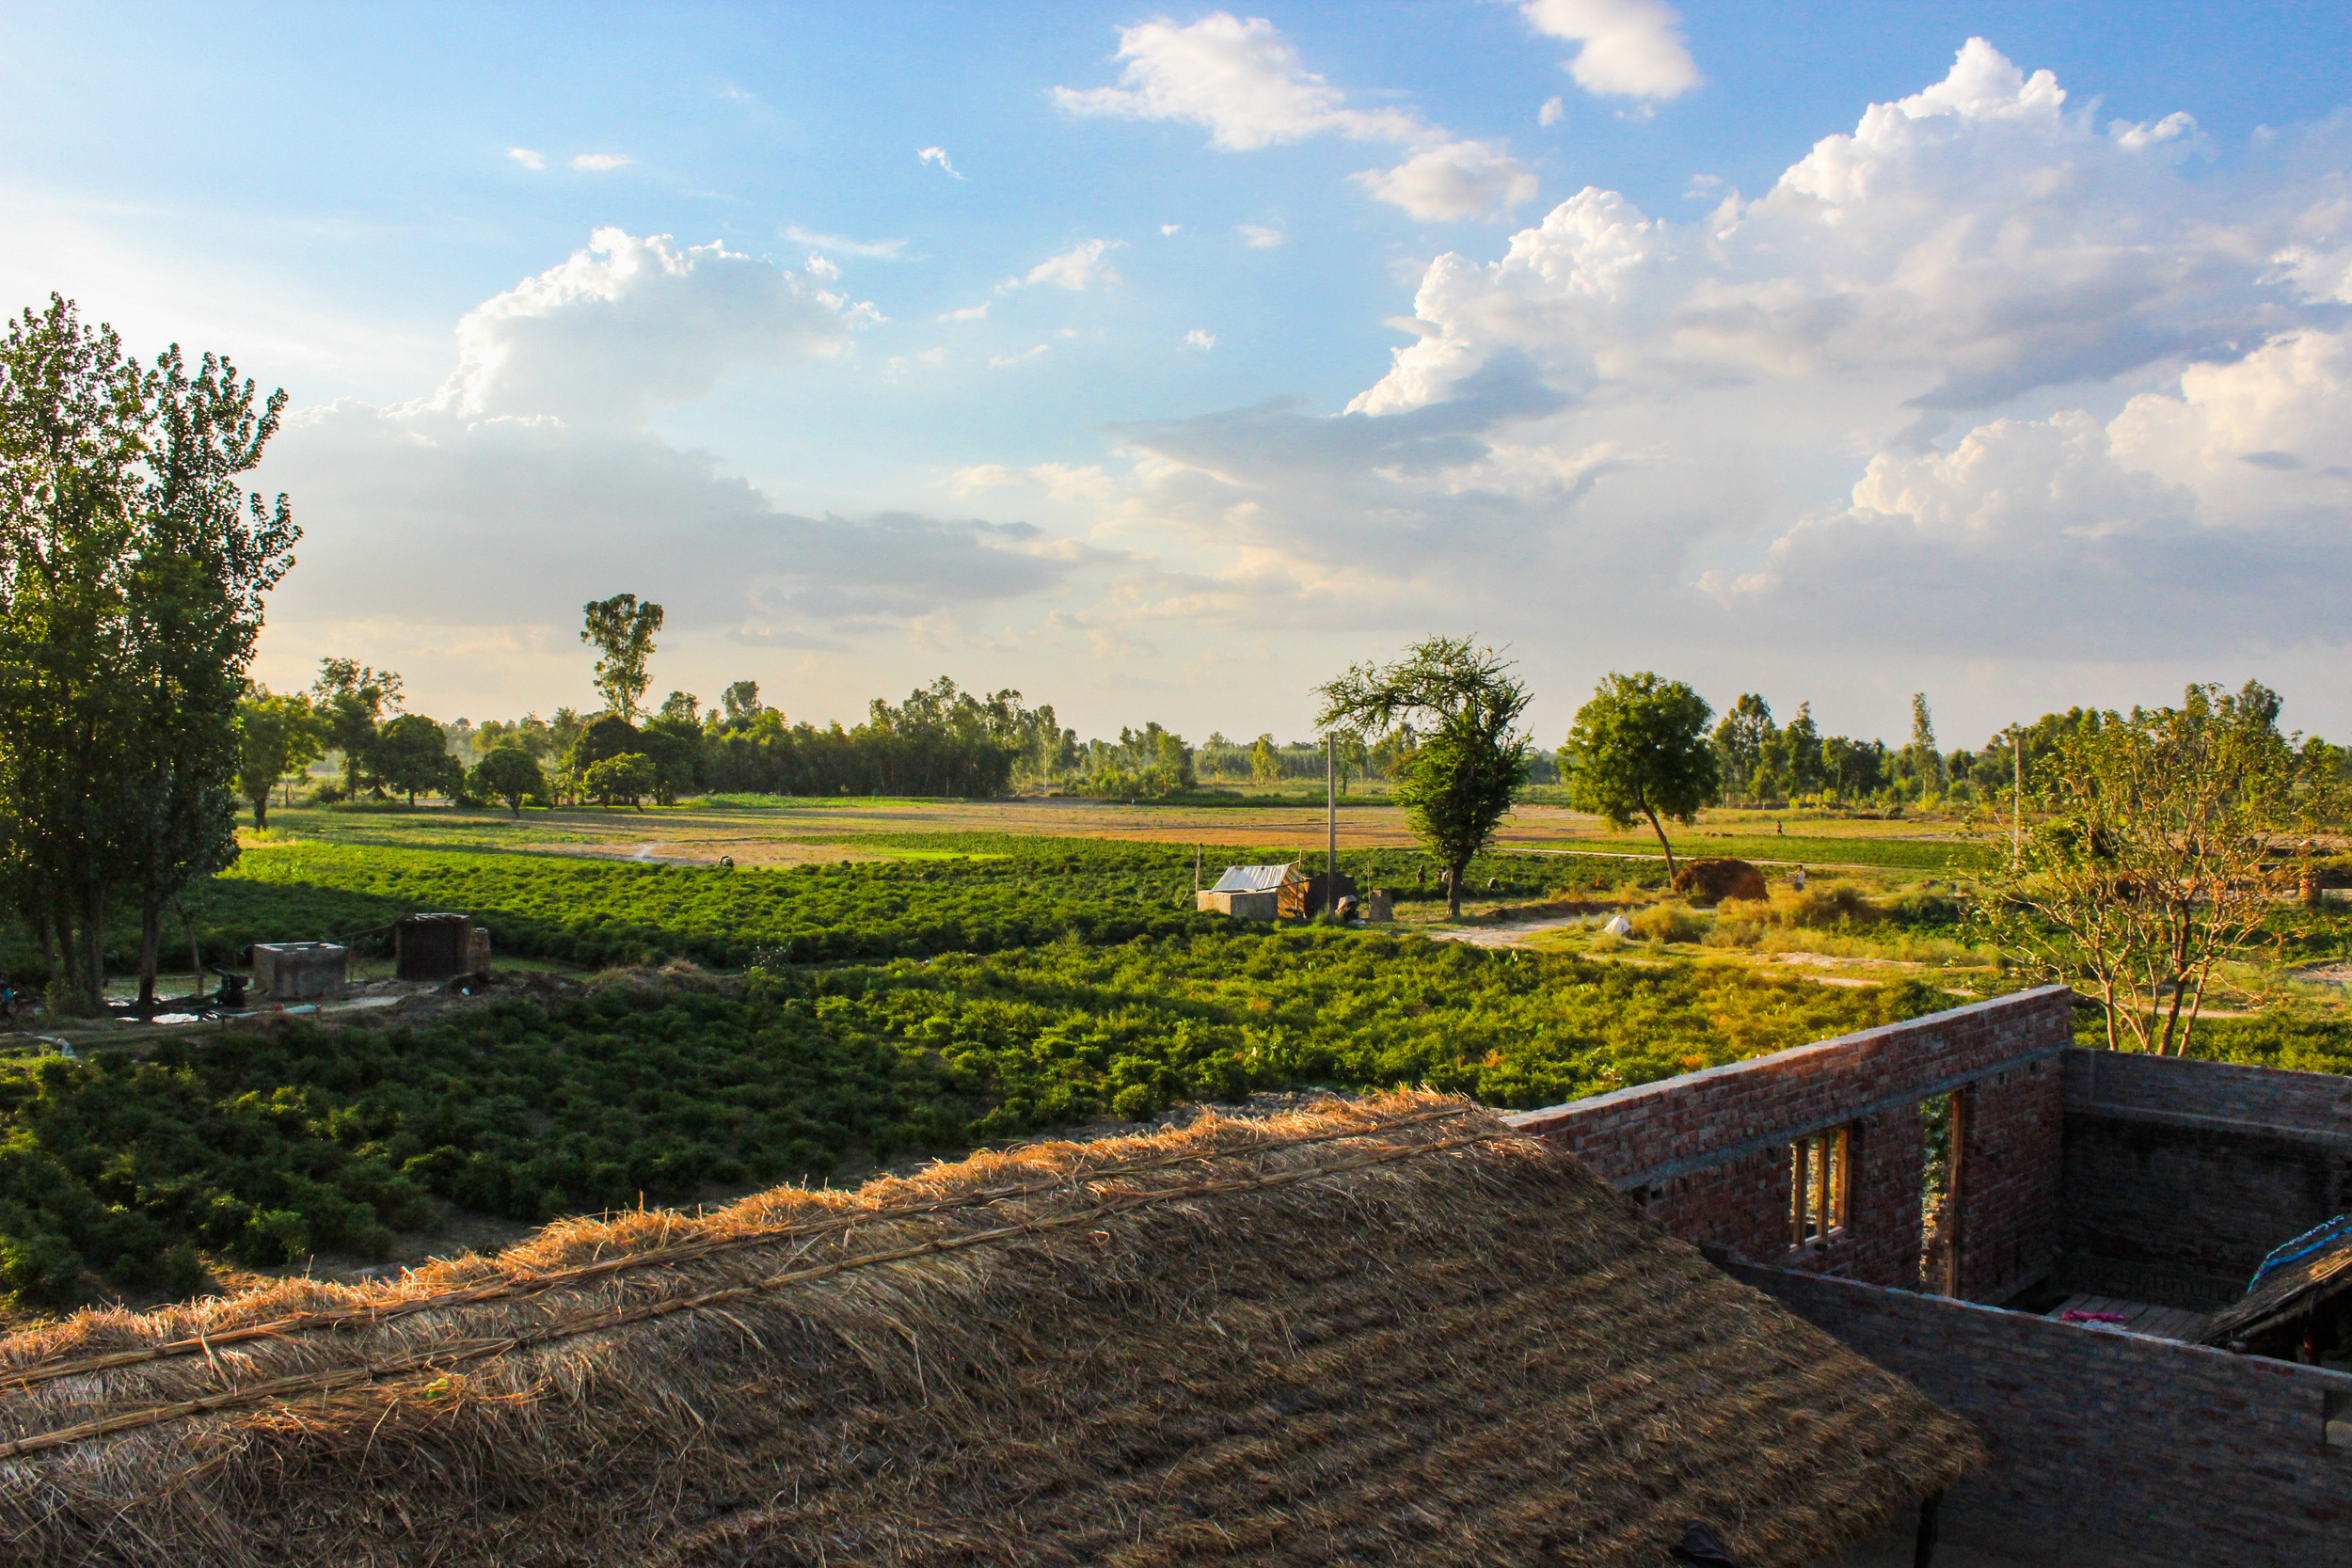 A picture of Santosh's land. This is where he and his neighbors grow food to sustain their families, a livelihood that is in danger of being taken awayfrom them.